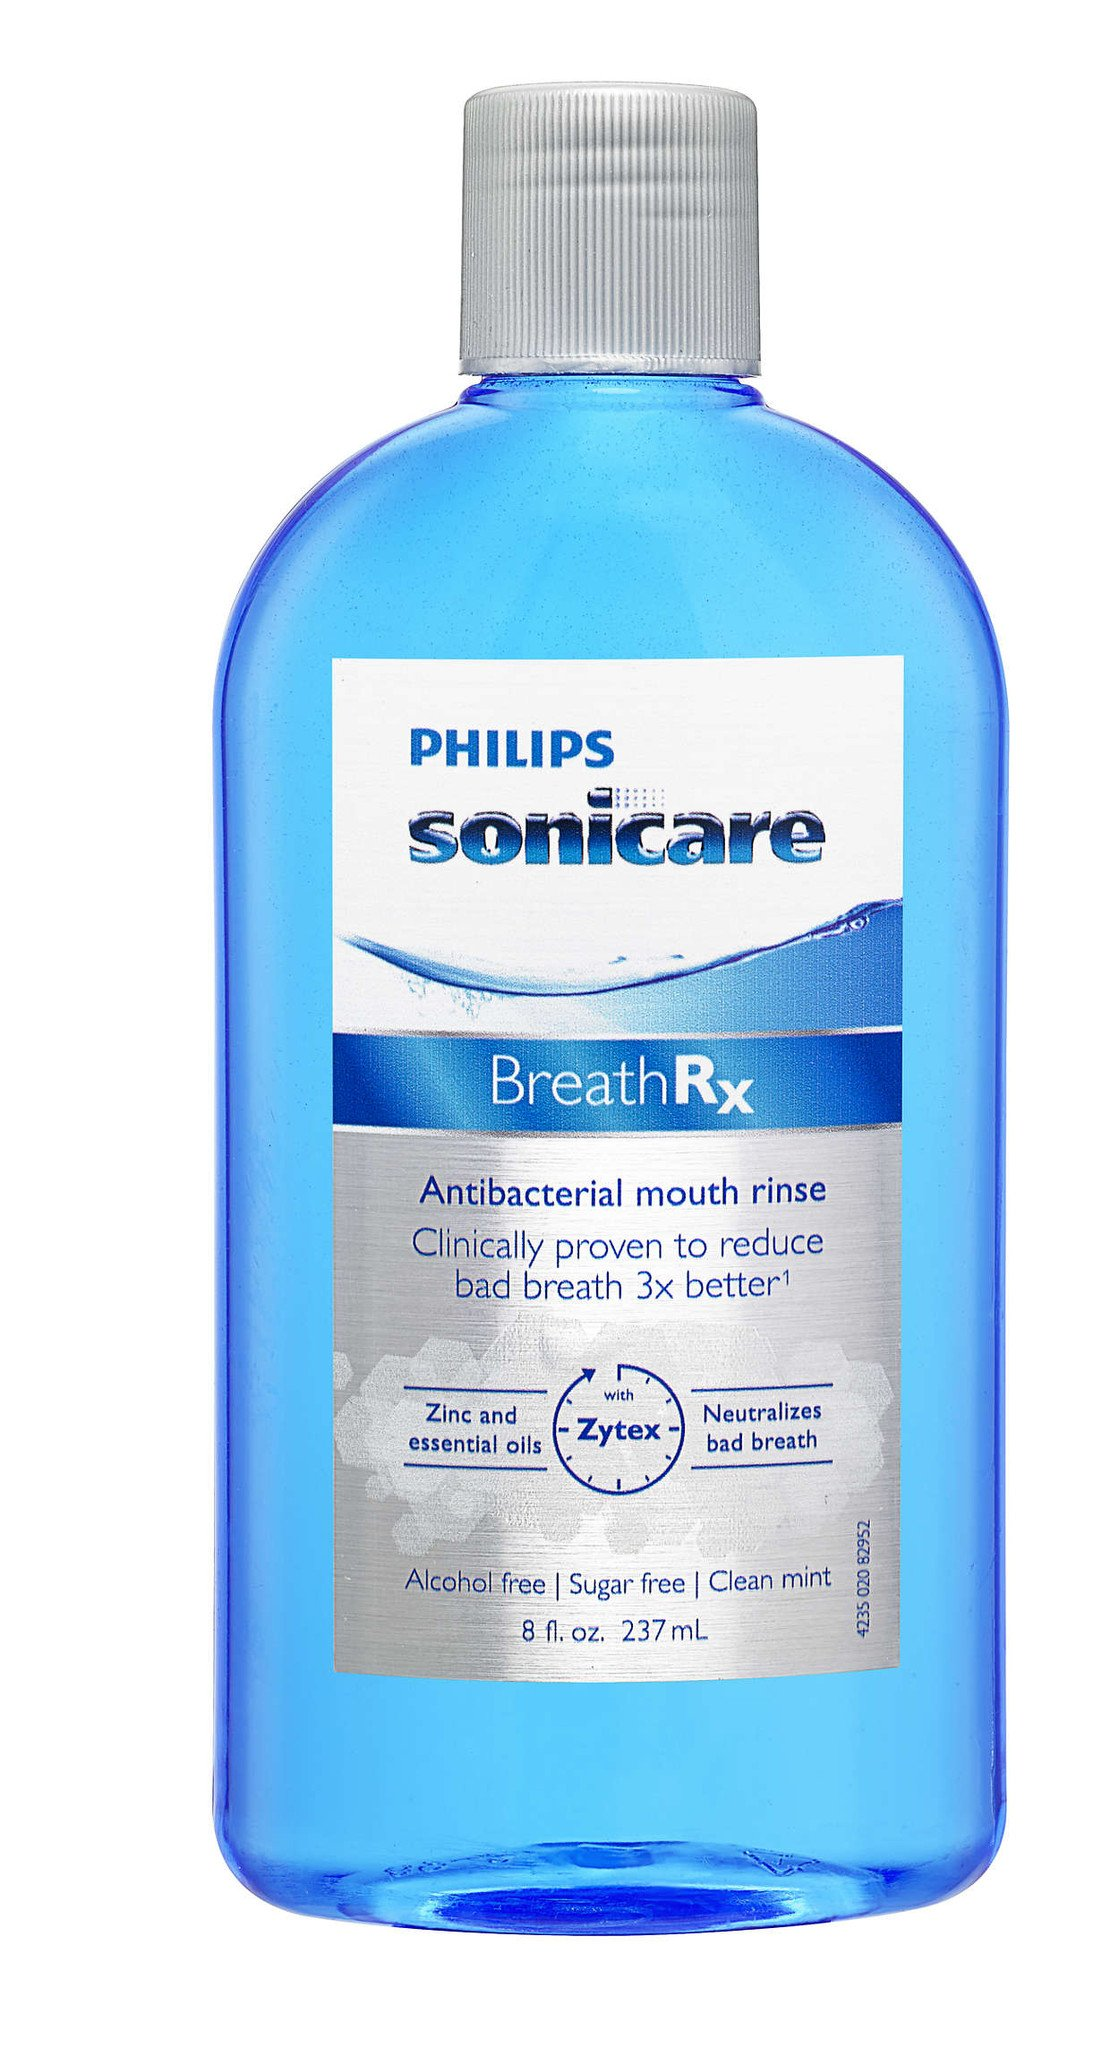 Ополаскиватель Philips Sonicare BreathRx, 473 ml